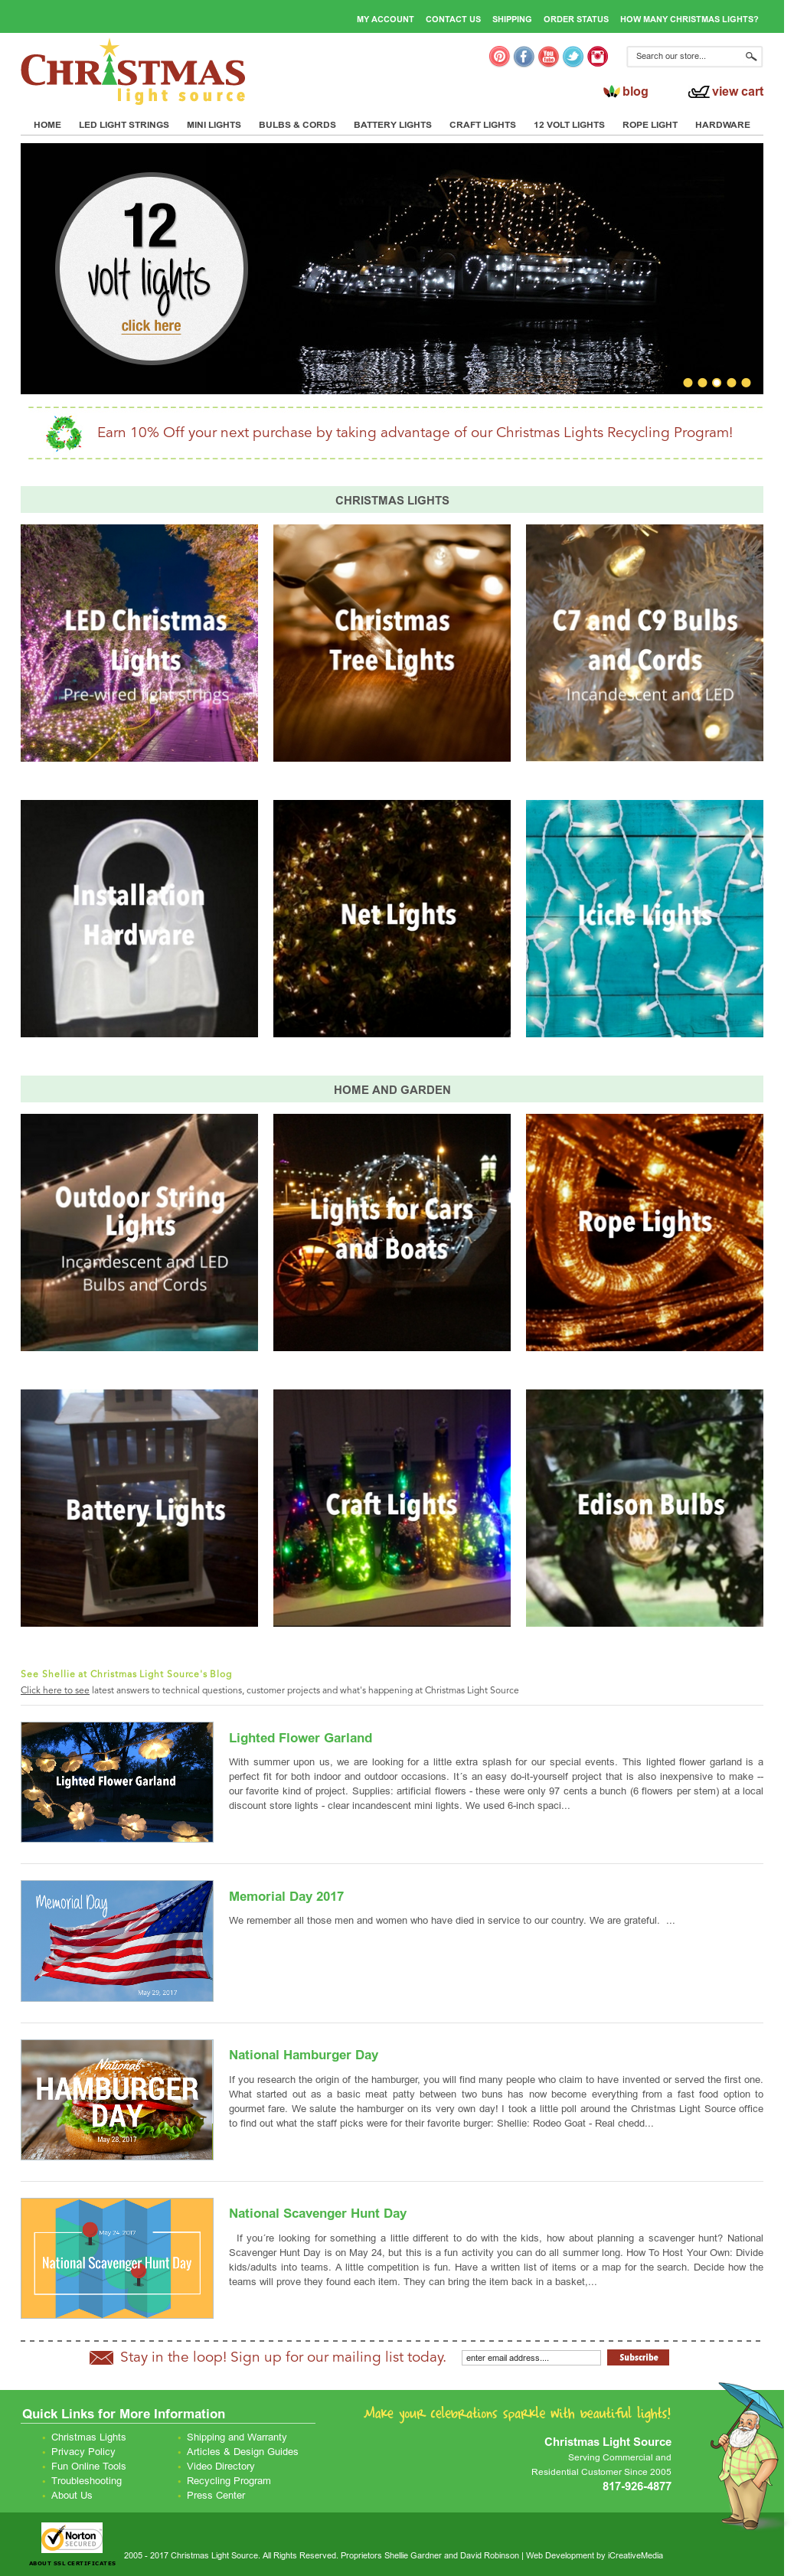 Christmas Light Source Website History